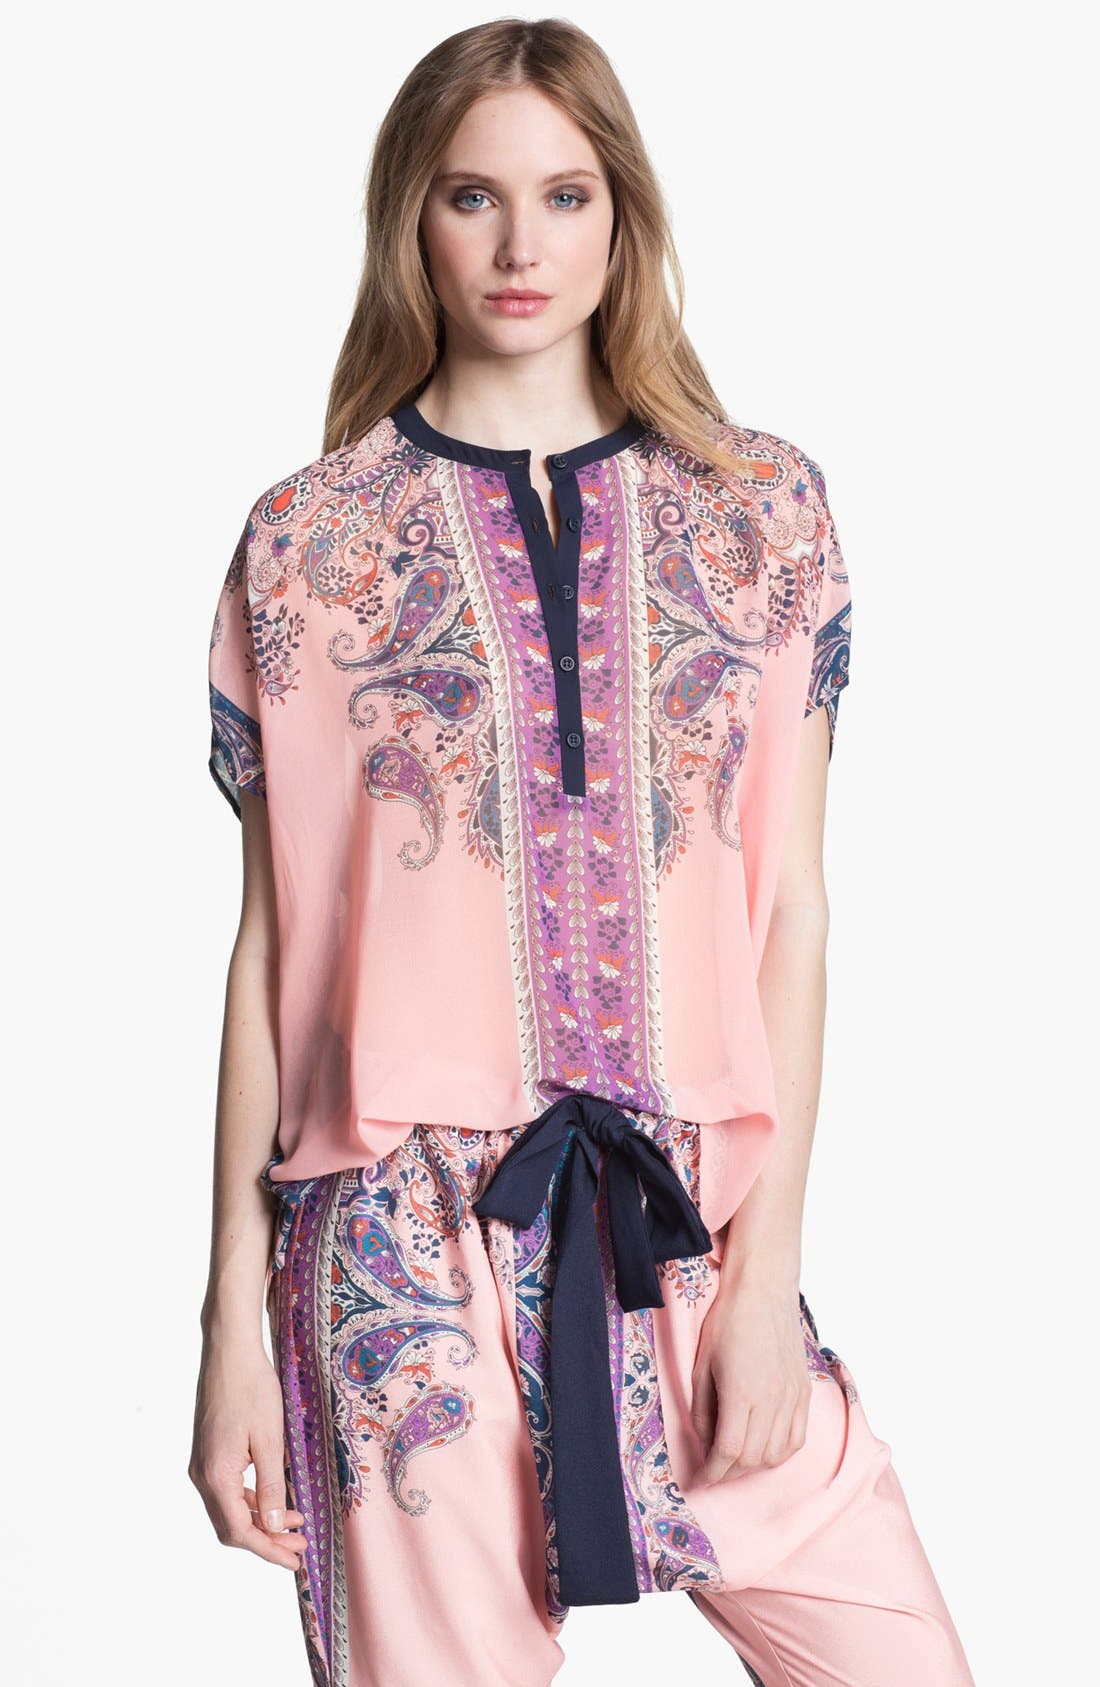 Alternate Image 1 Selected - Clover Canyon 'Bohemian Scarf' Print Top